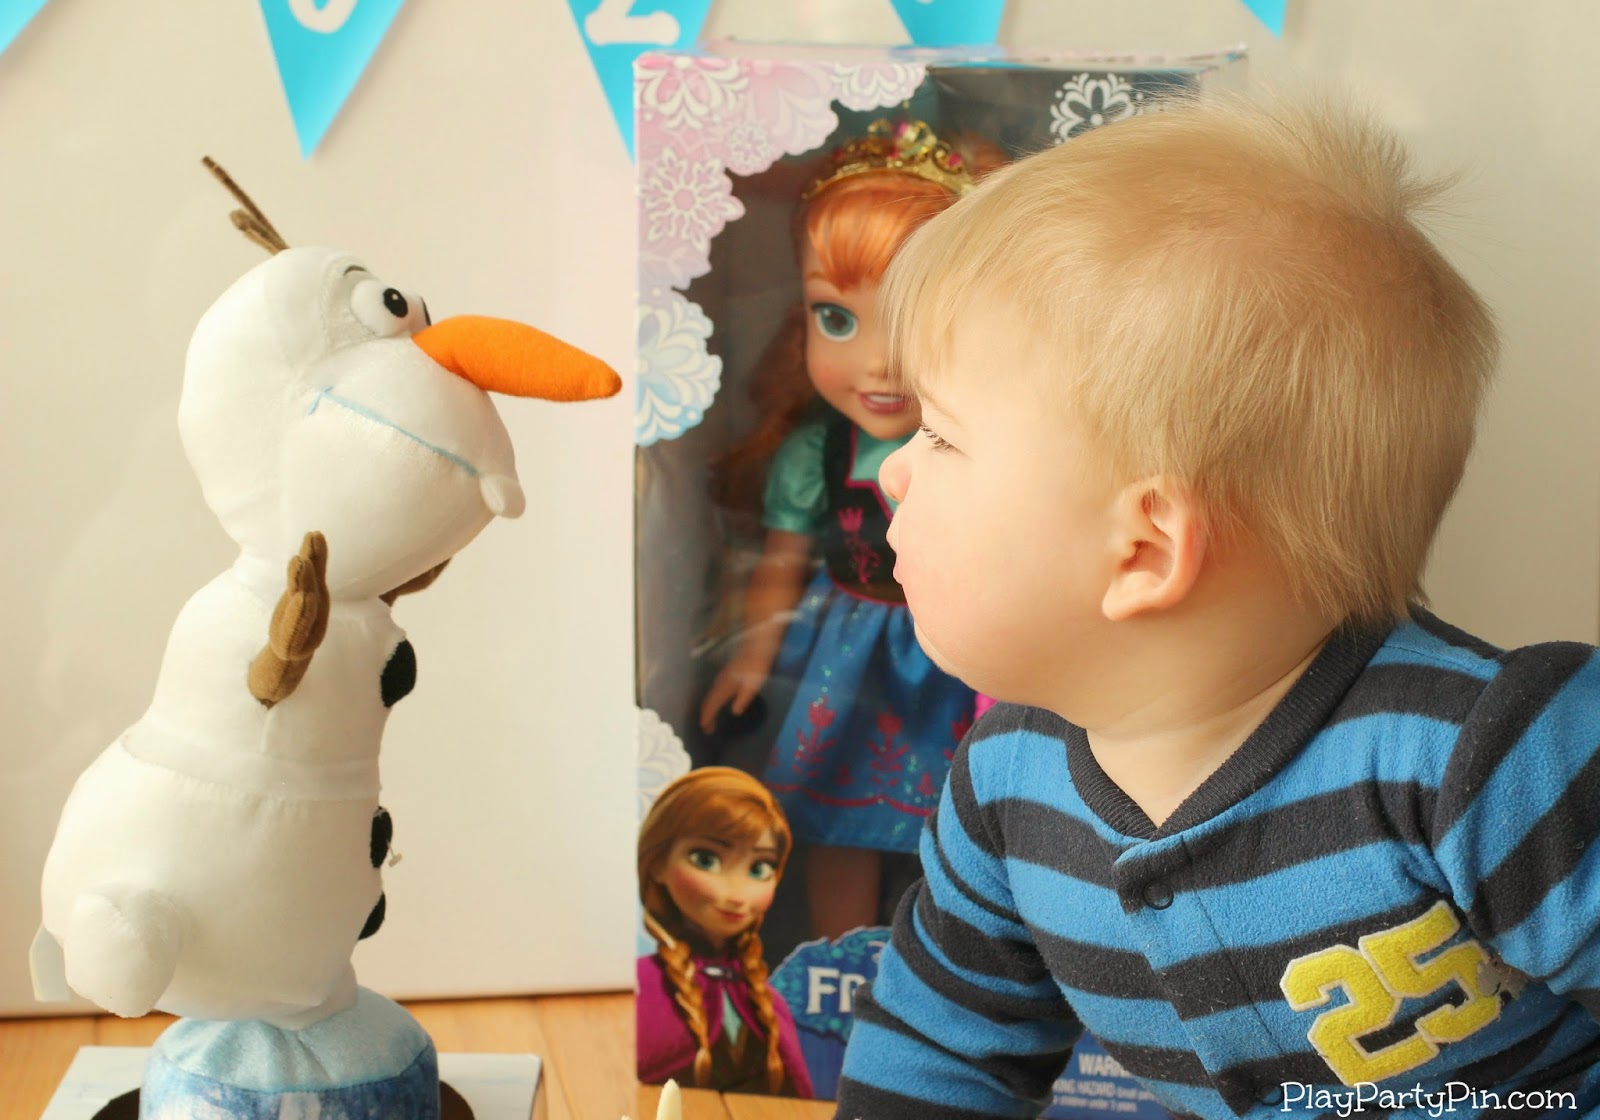 Spinning Olaf Toy with Baby